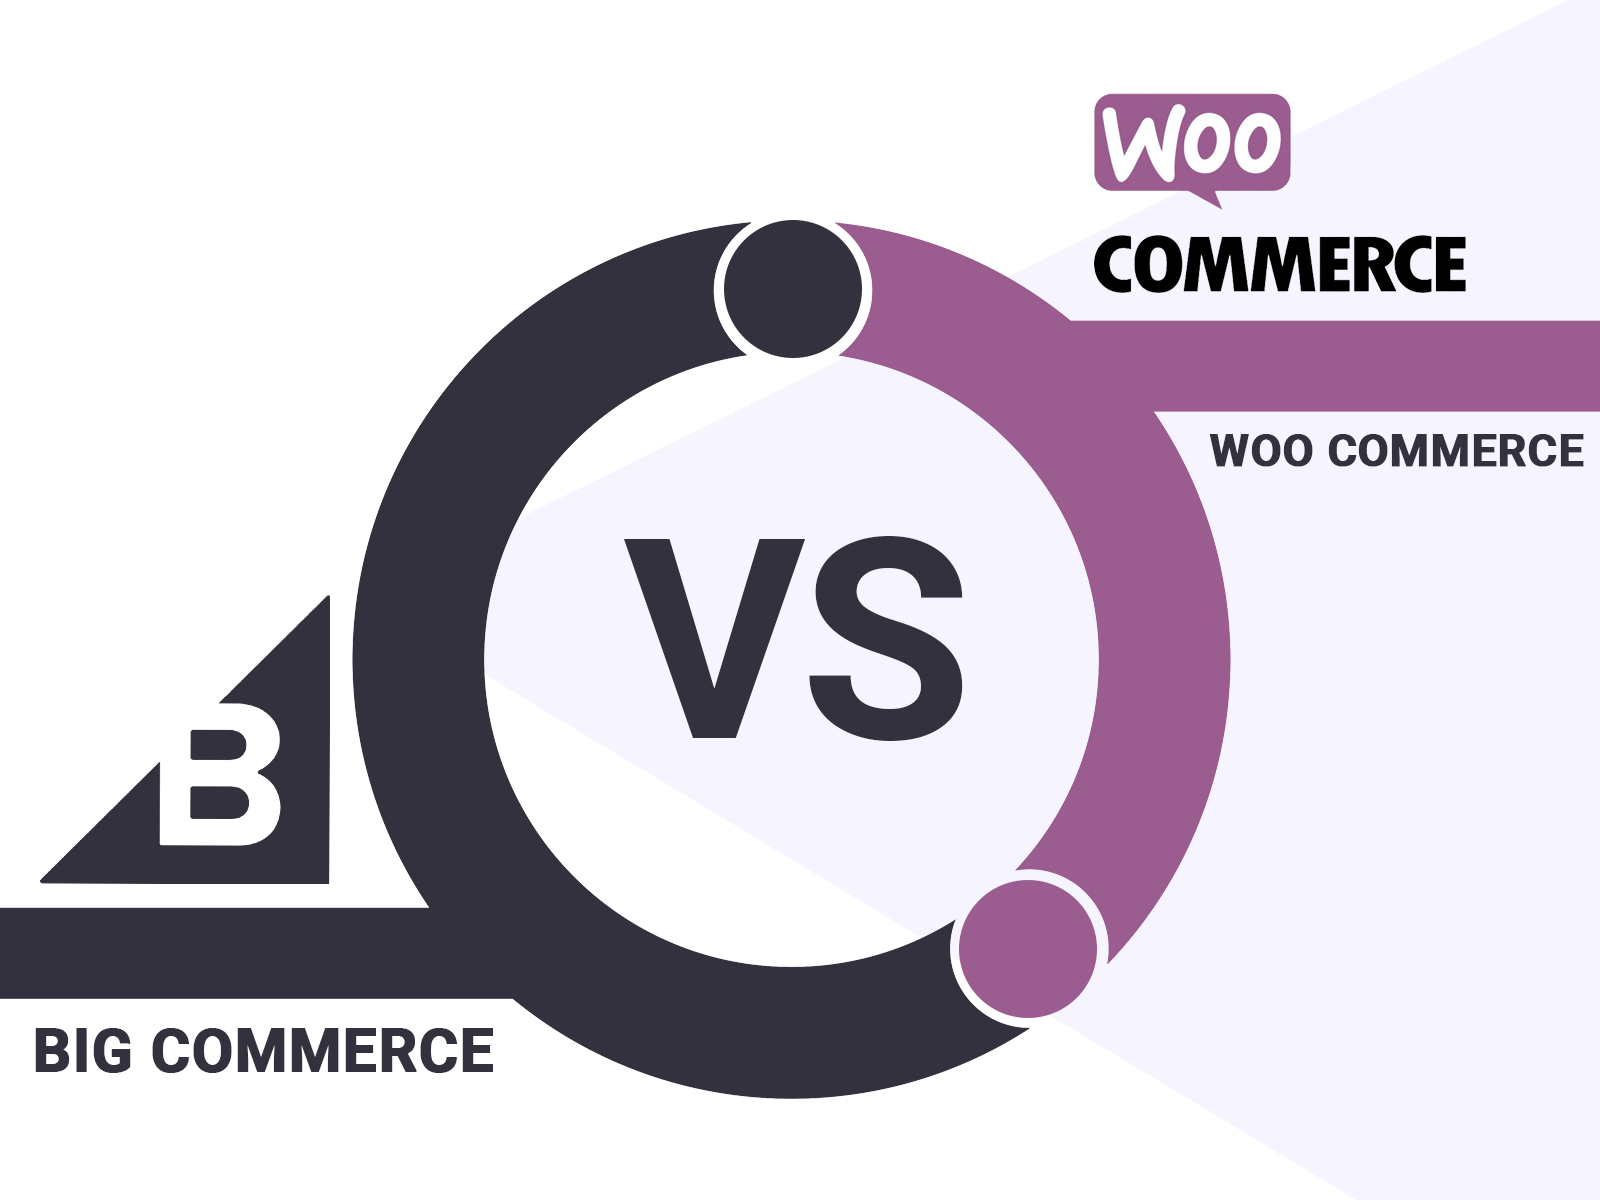 BigCommerce vs. Woo Commerce